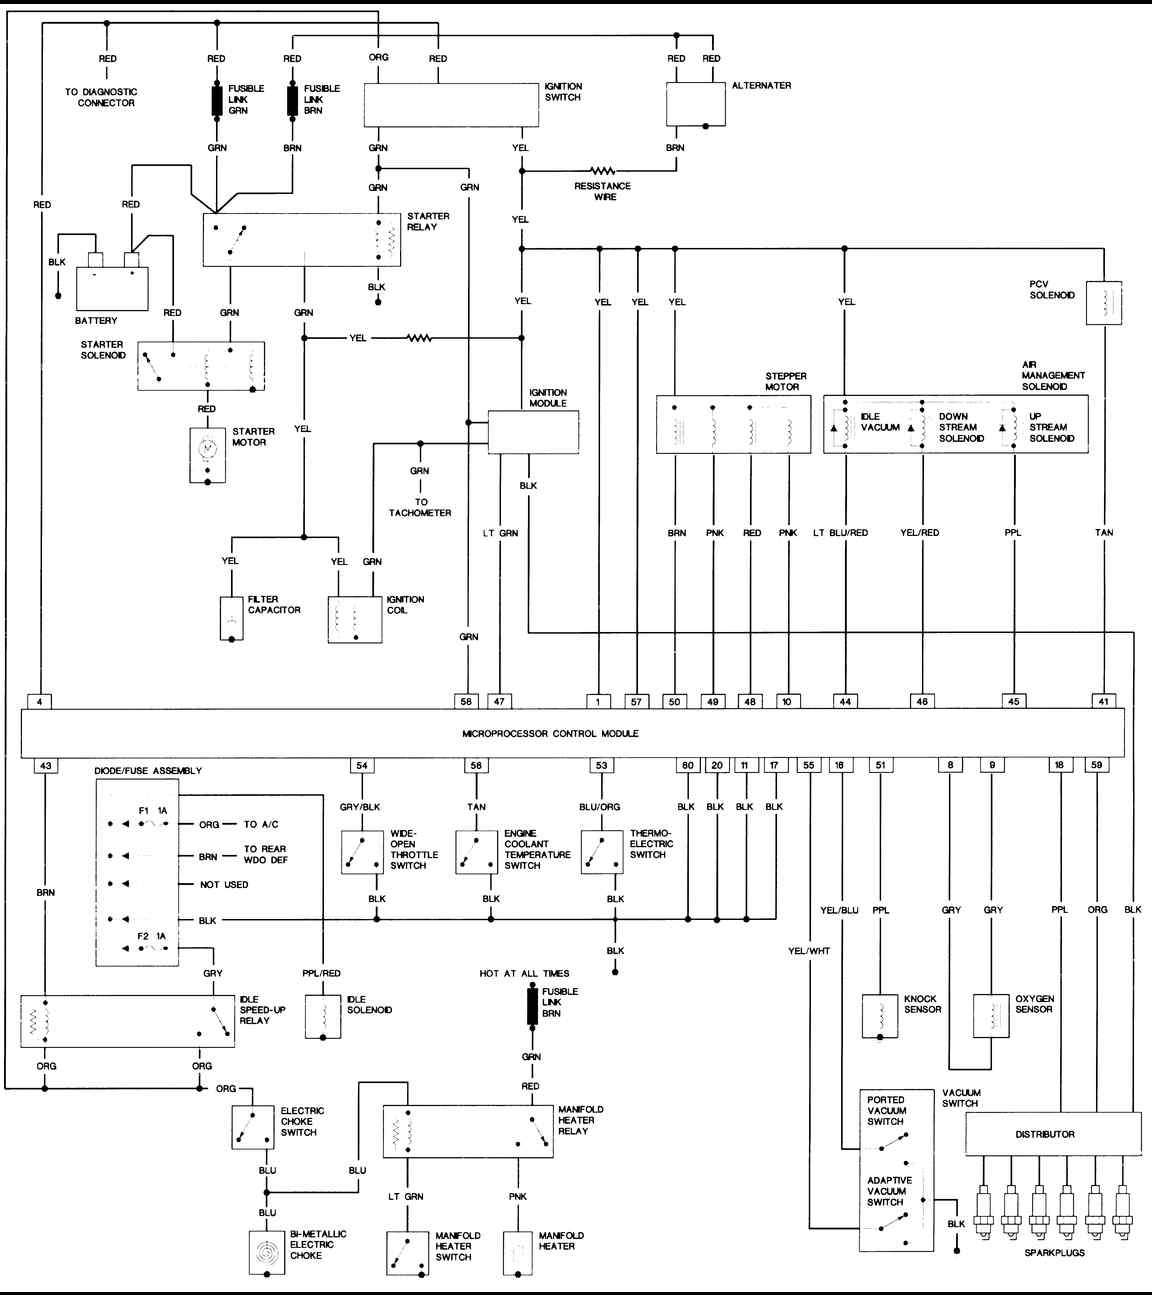 1987 jeep wrangler 4.2L engine 1987 jeep wrangler 4 2l engine(large) freeautomechanic 2007 jeep wrangler wiring diagram at n-0.co